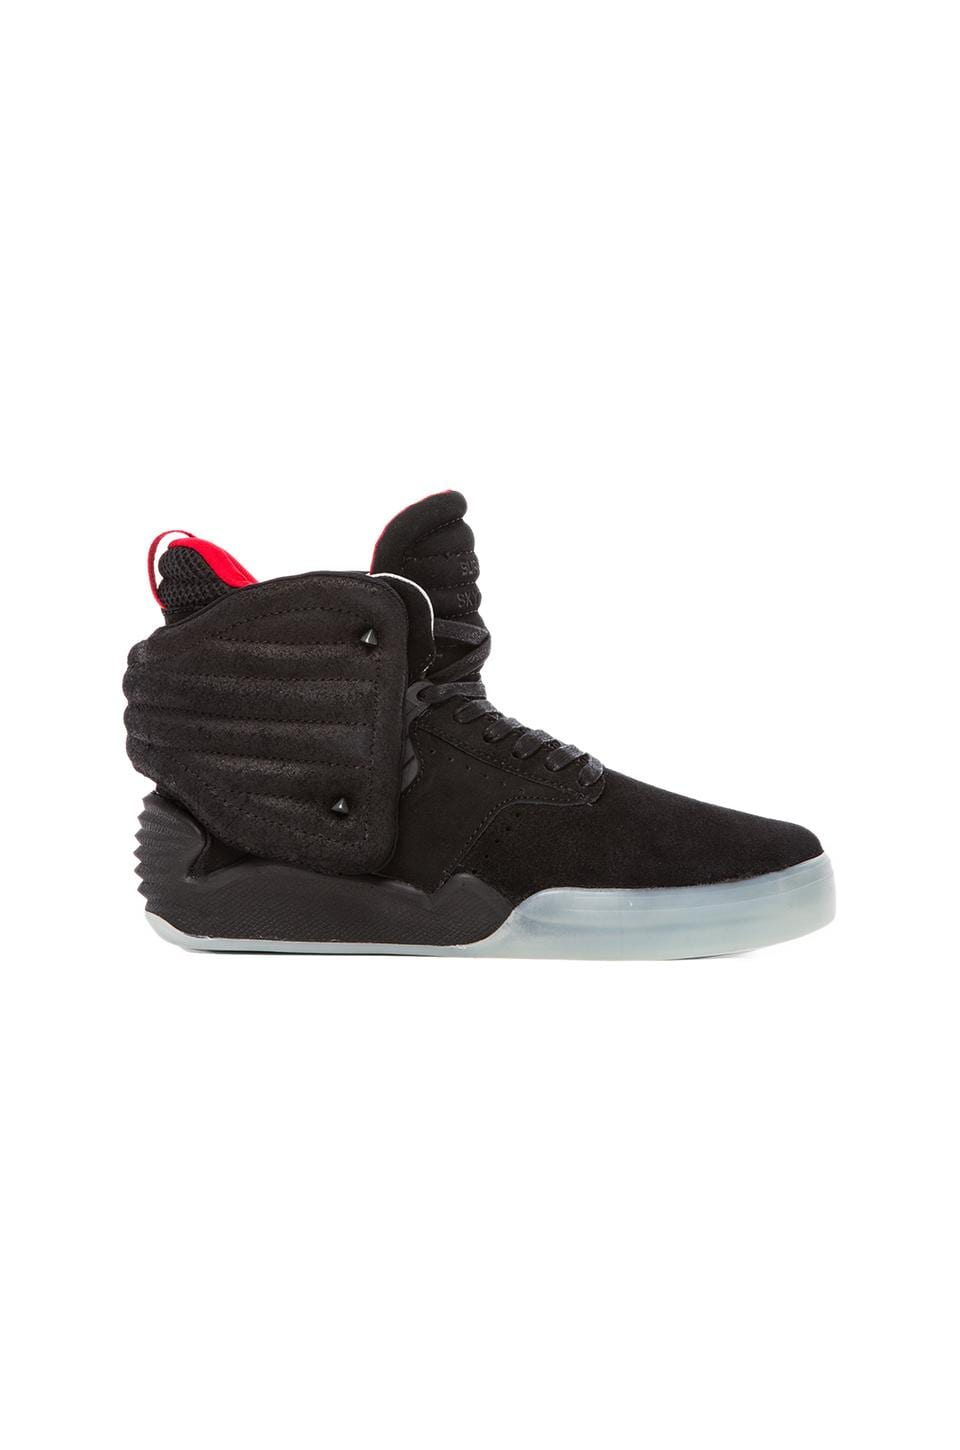 Supra Skytop 1V Leather in Black